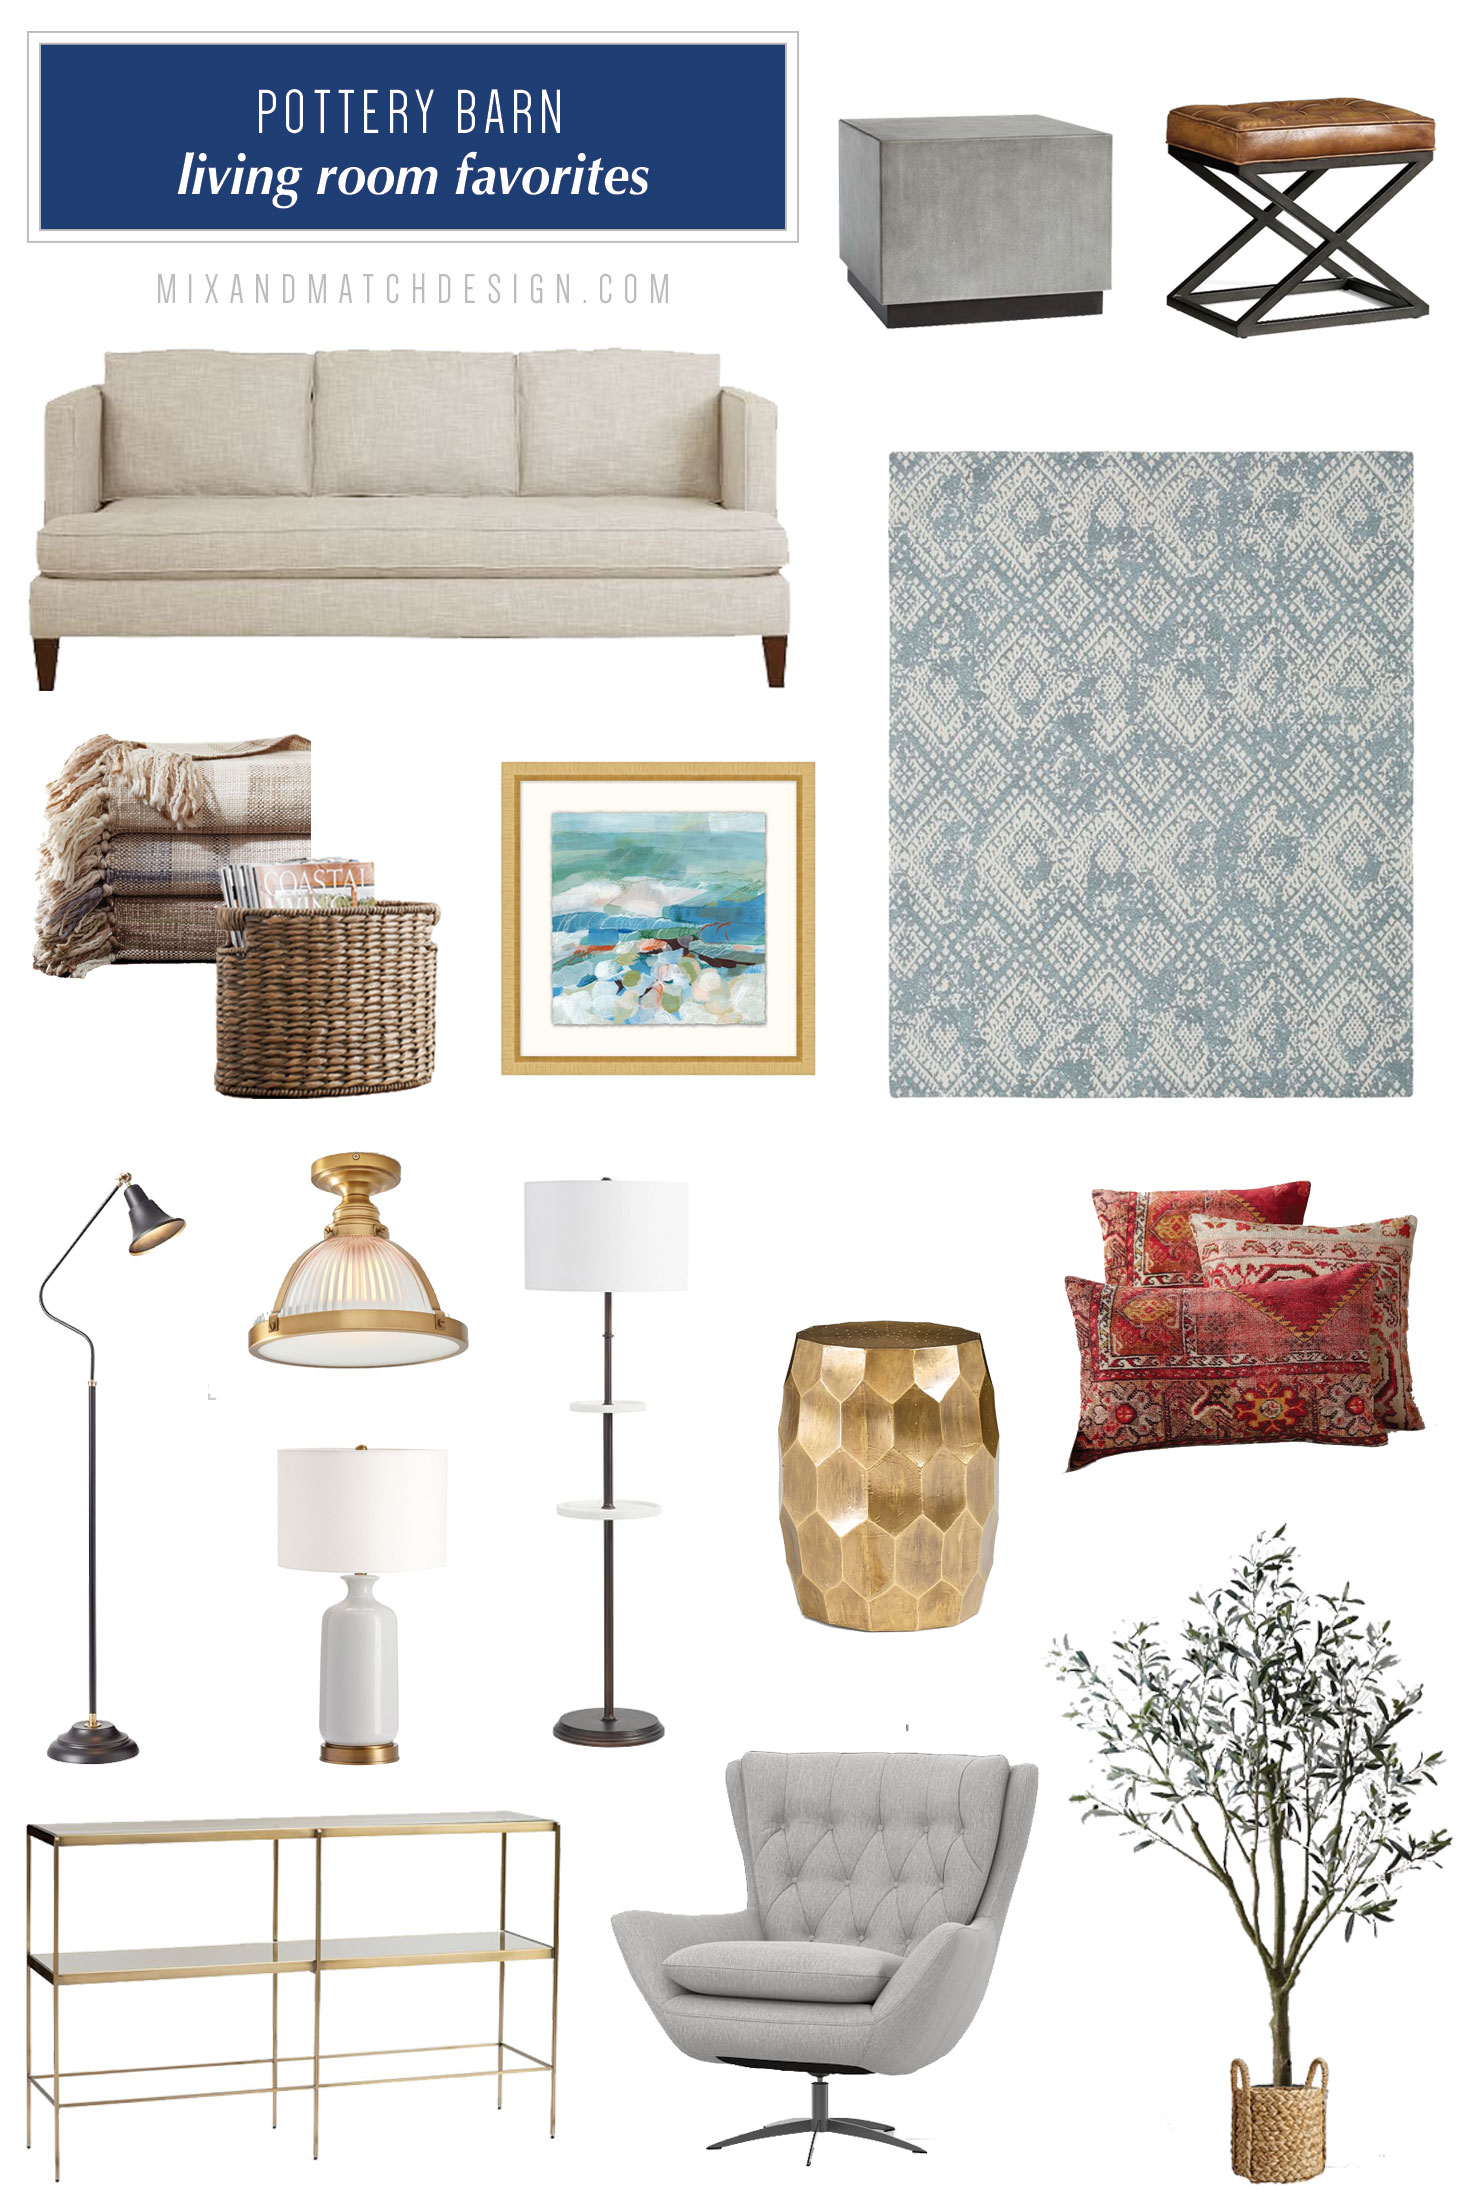 Pottery Barn is one of my favorite places to shop for farmhouse, industrial, and classic furniture and decor, and I've rounded up a bunch of my favorites for your living room to share with you! // #designerfinds #interiordesign #decor #farmhousestyle #modernfarmhouse #decorating